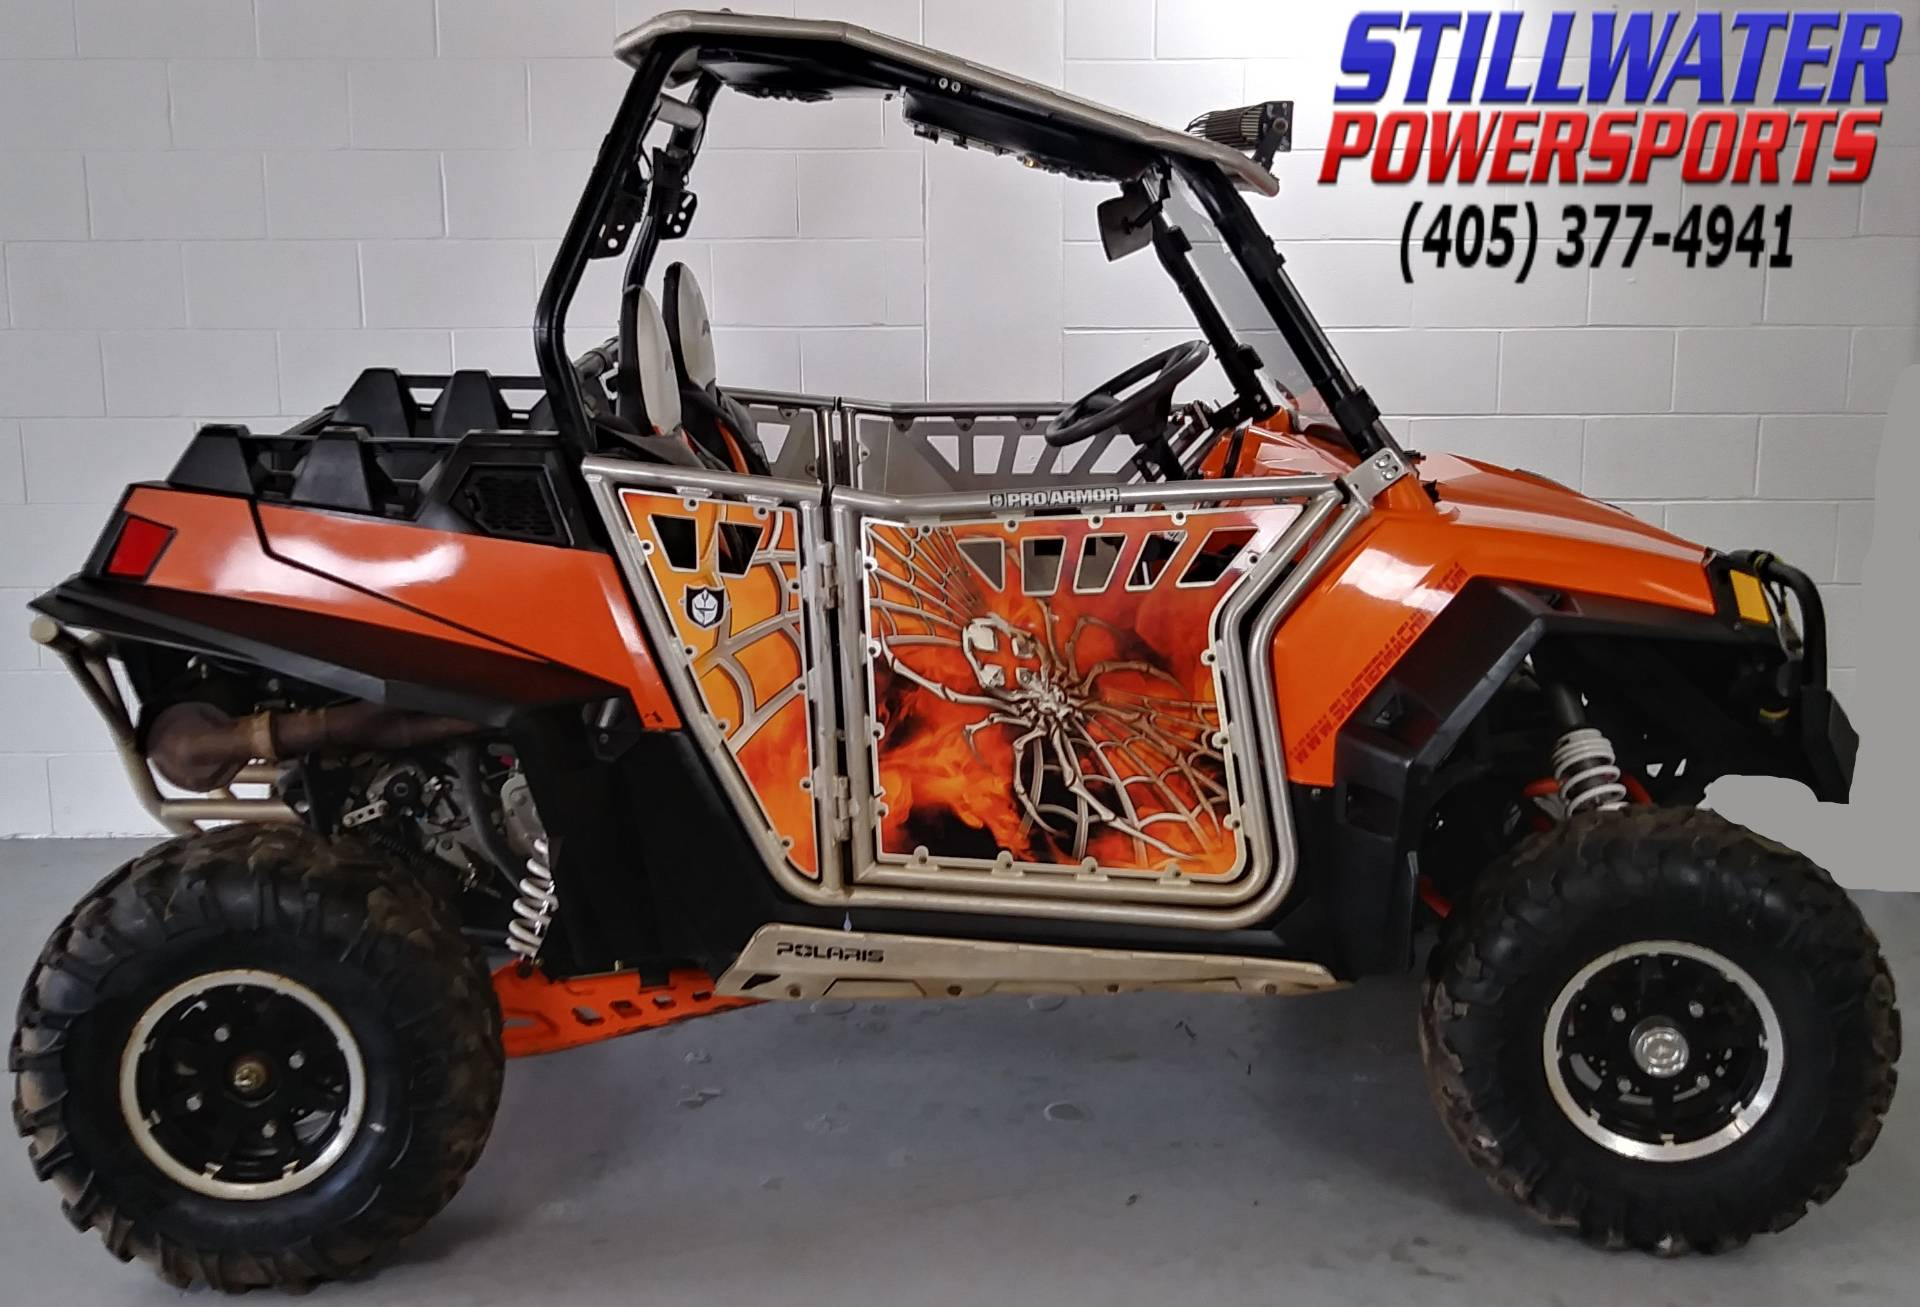 hight resolution of 2013 polaris rzr xp 900 eps le in stillwater oklahoma photo 1